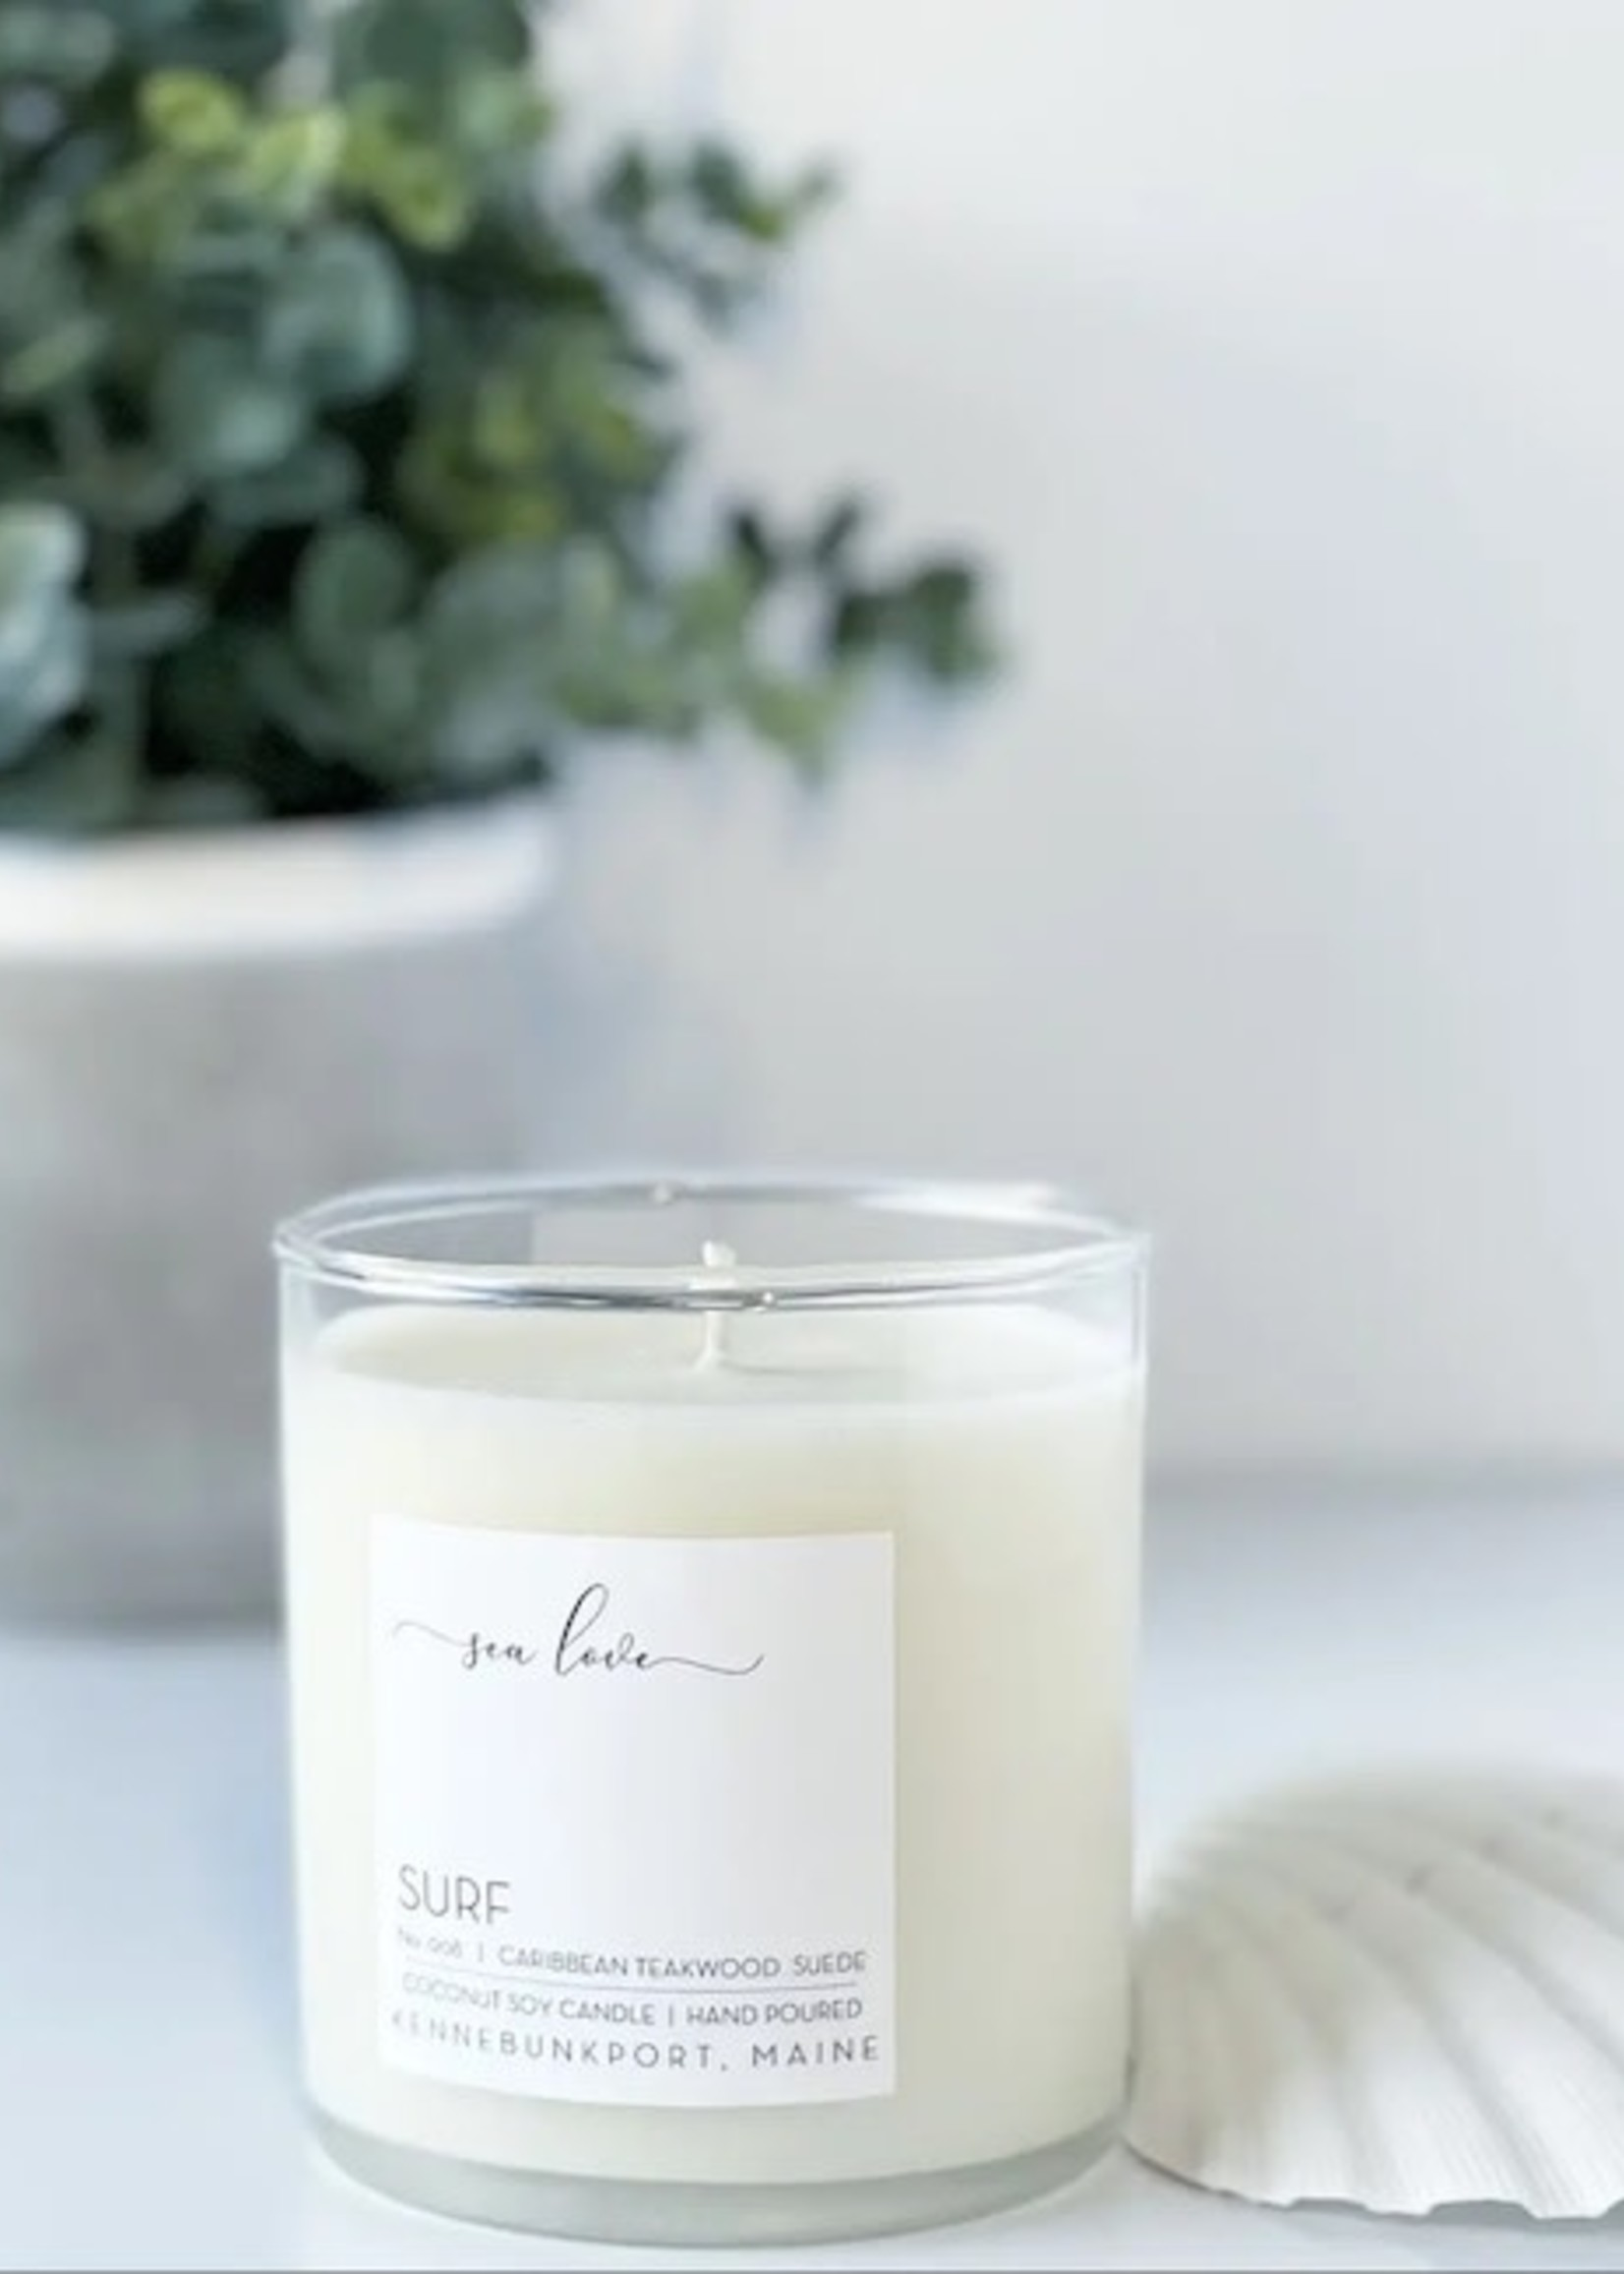 Sea Love Candles Surf Candle